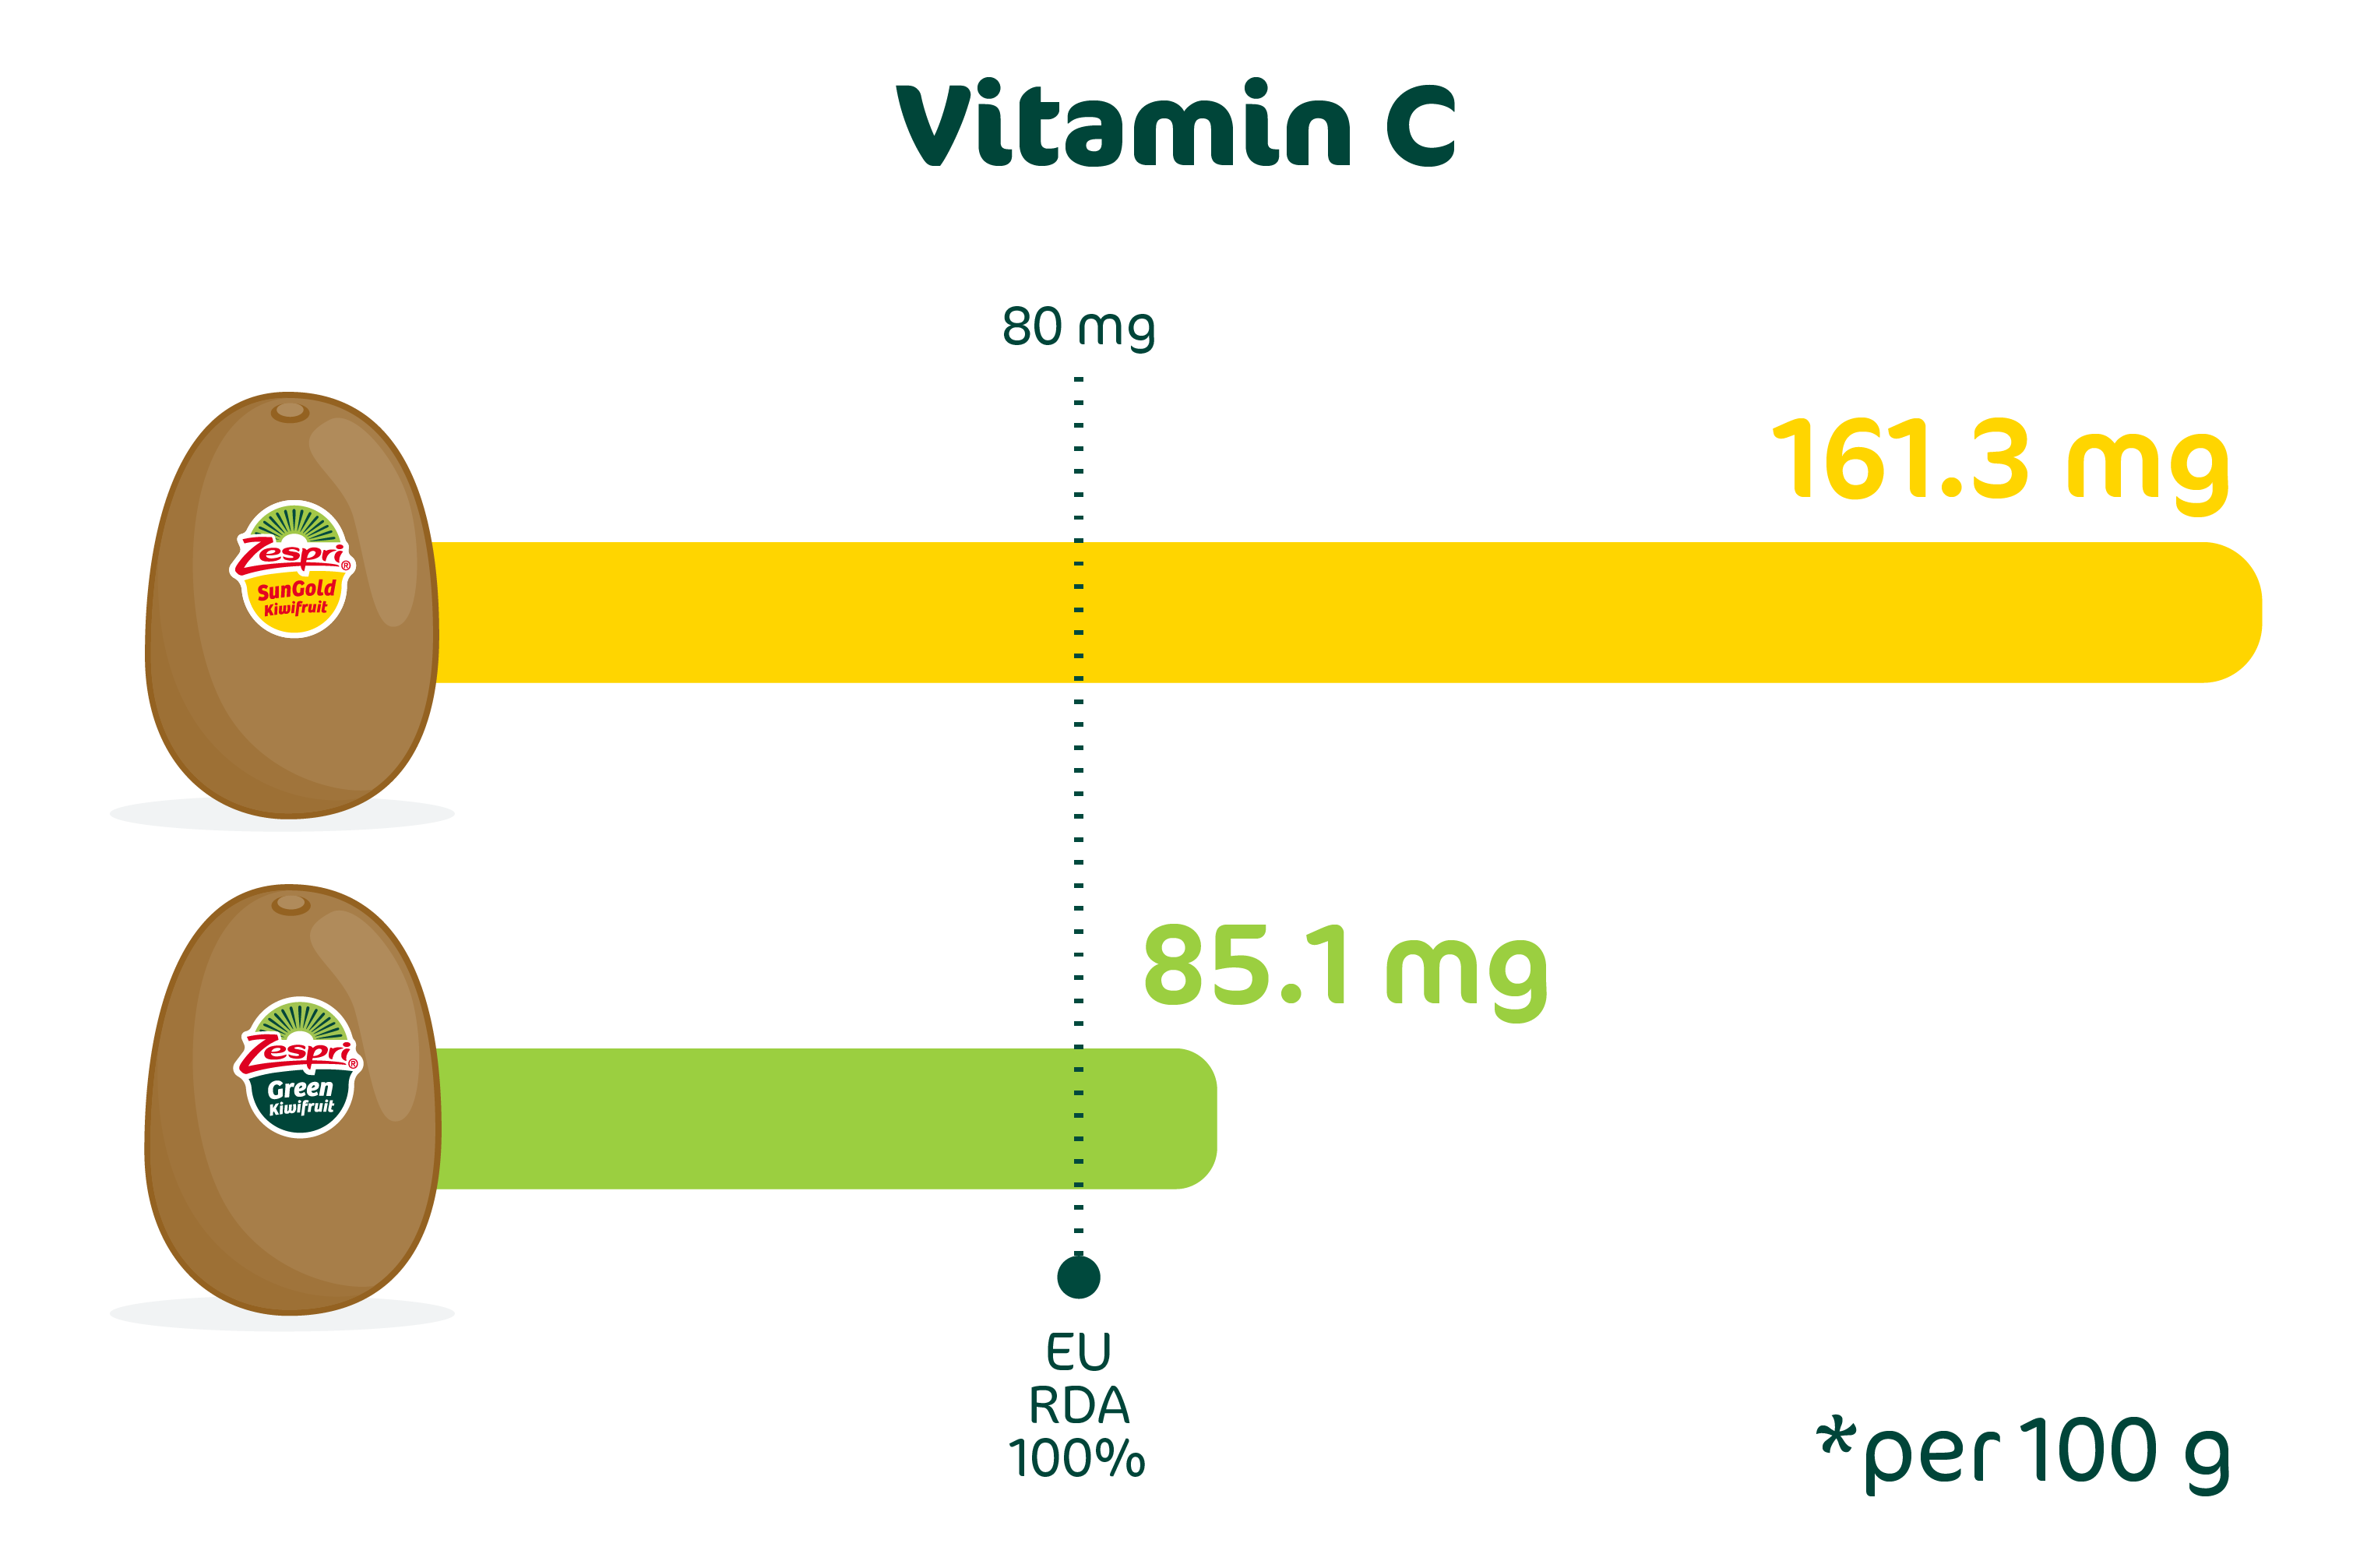 how much vitamin c does a kiwifruit contain?